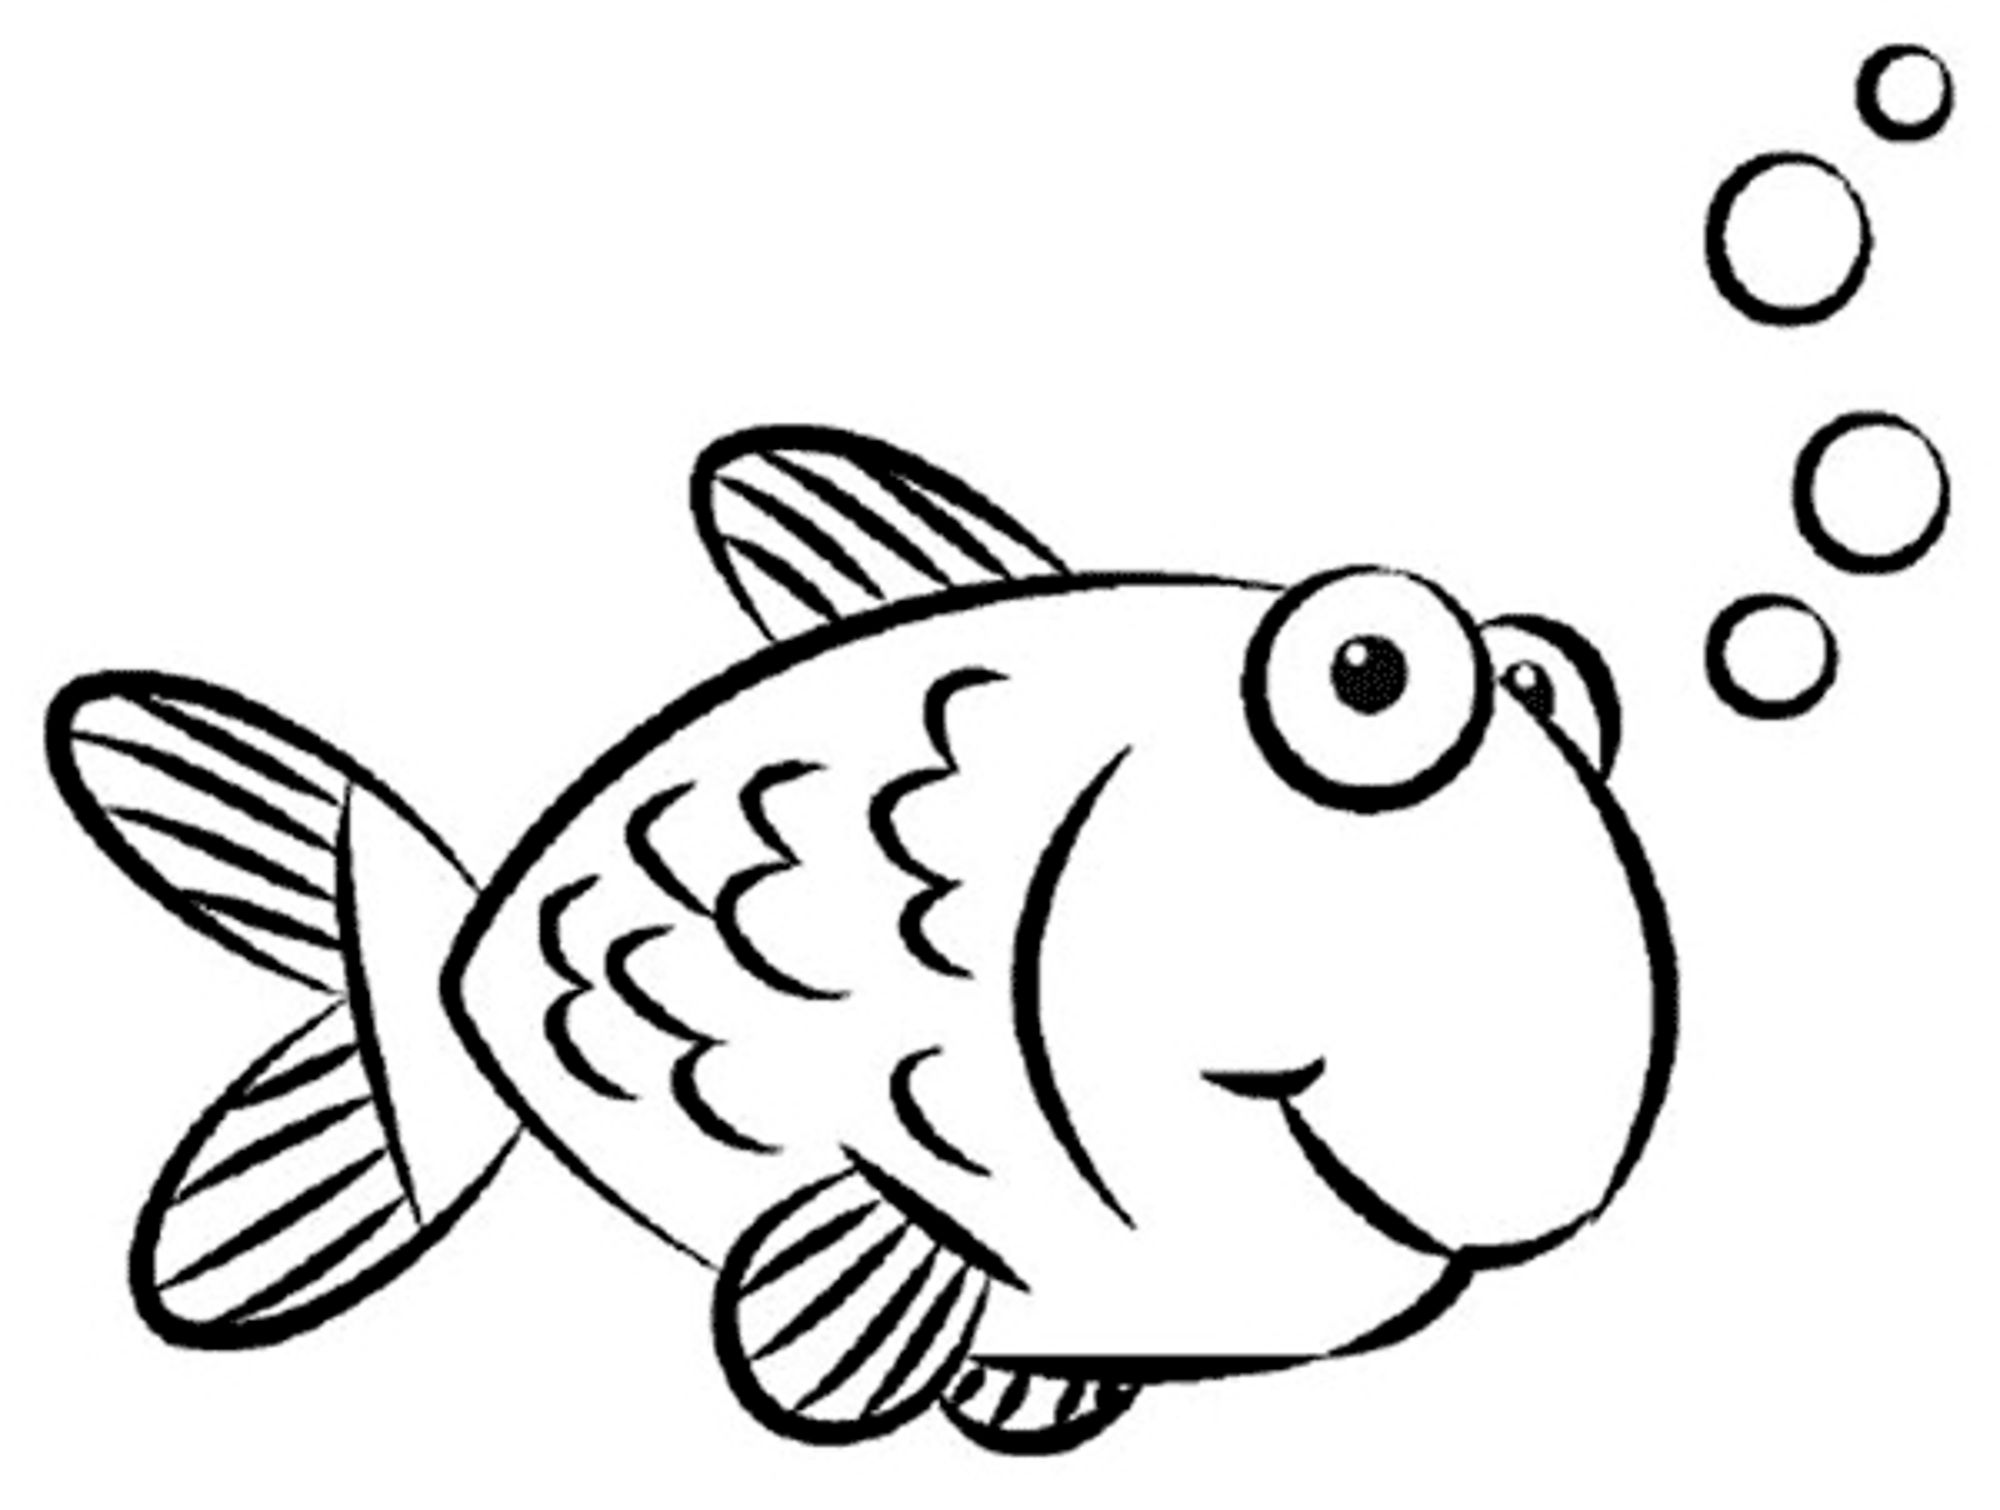 images of fish for colouring download fishing clipart black and white fish line art colouring of images fish for